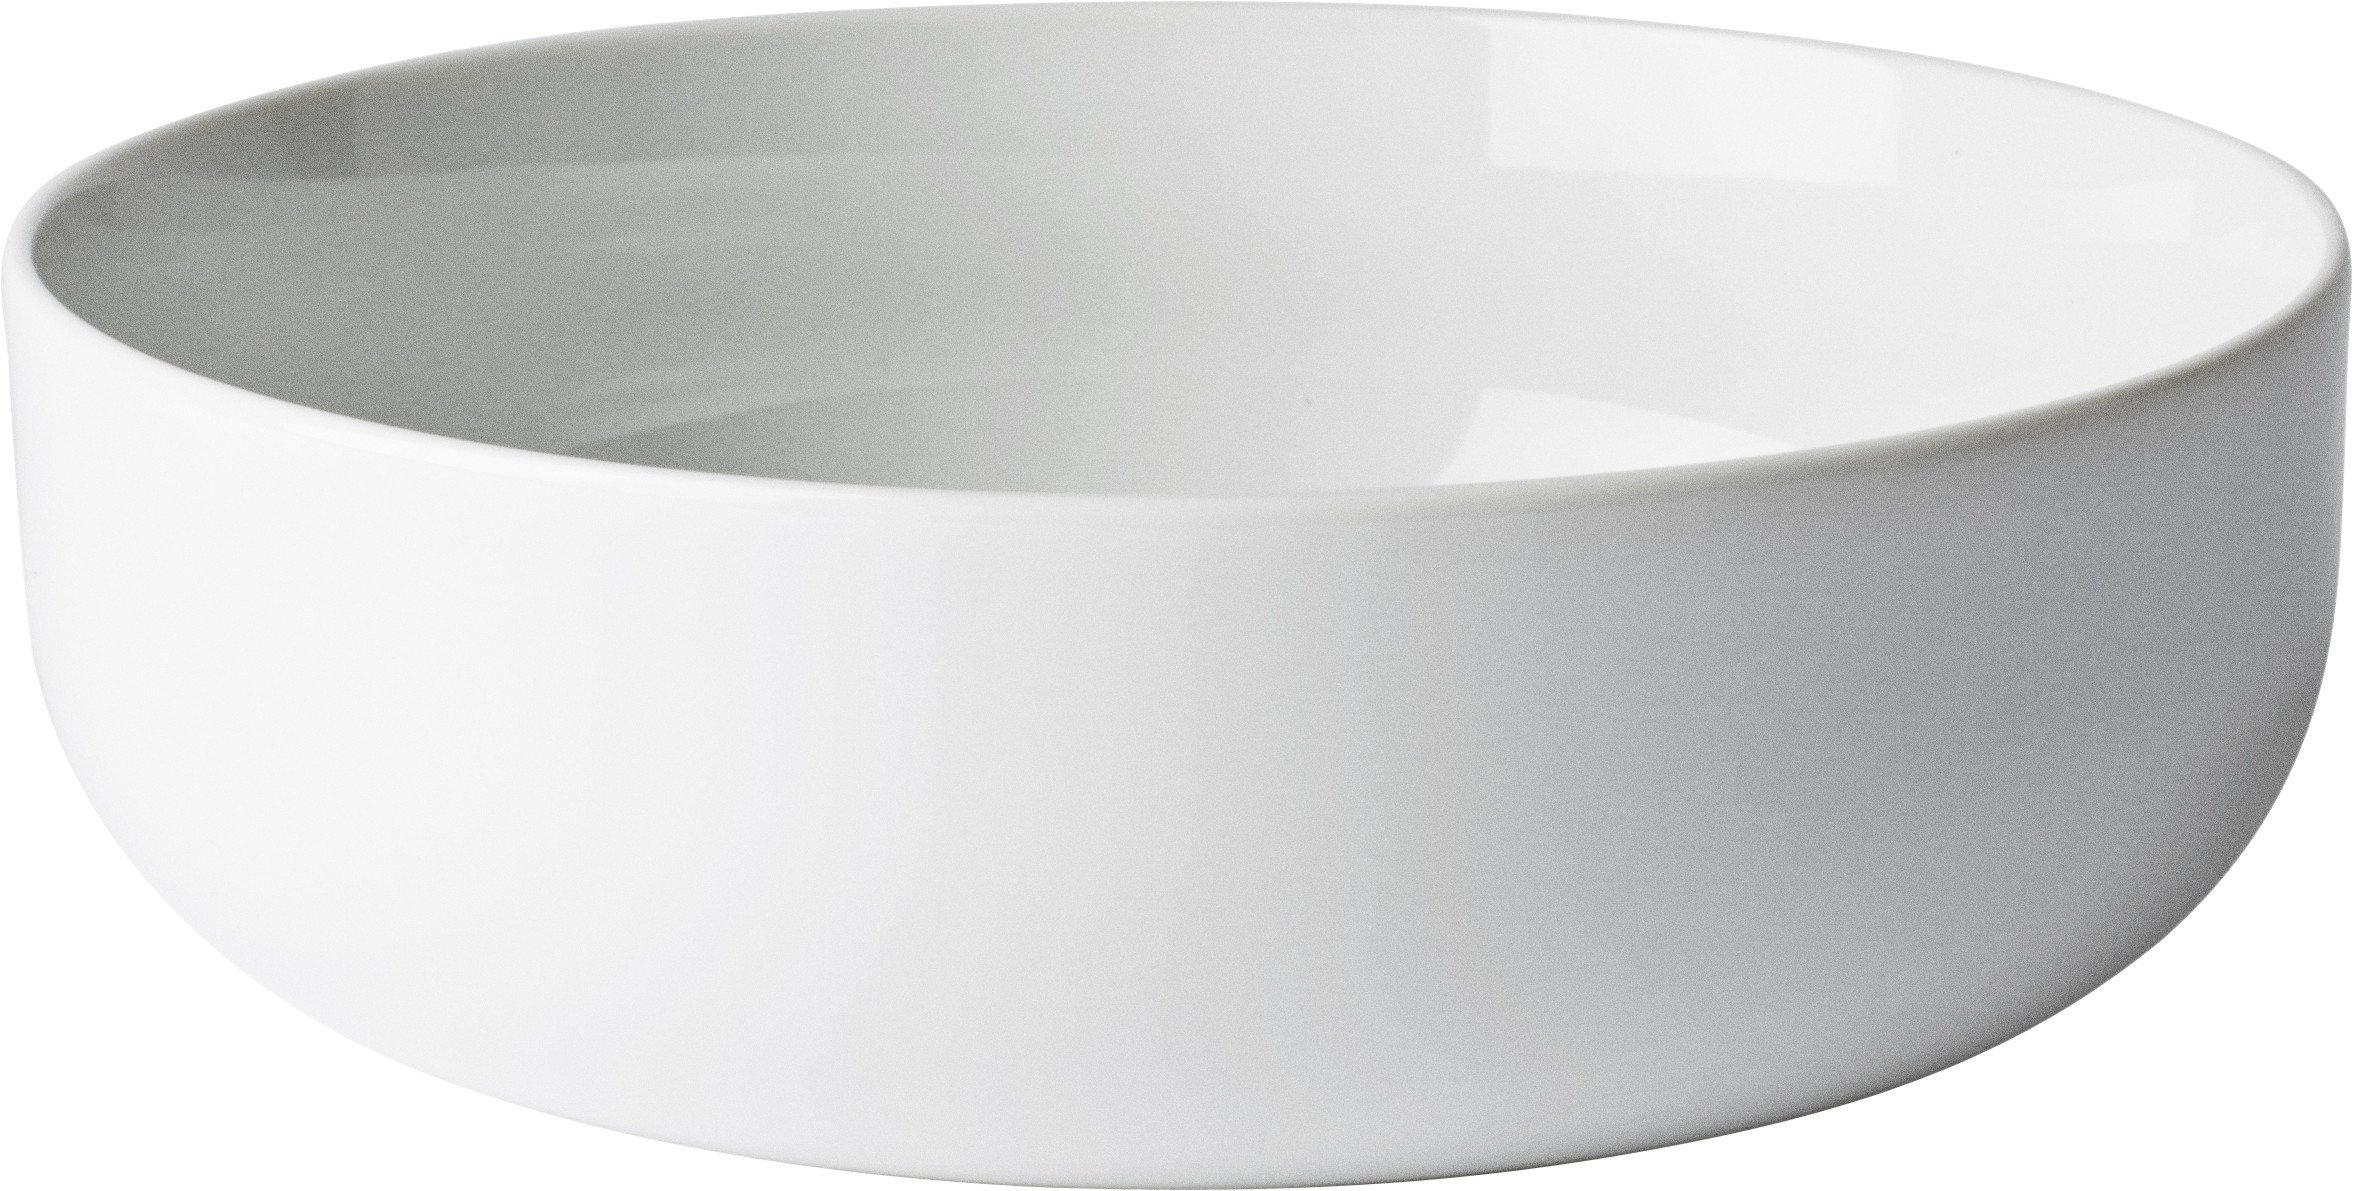 New Norm Bowl White, Ø 17,5cm by Norm Architects for Menu